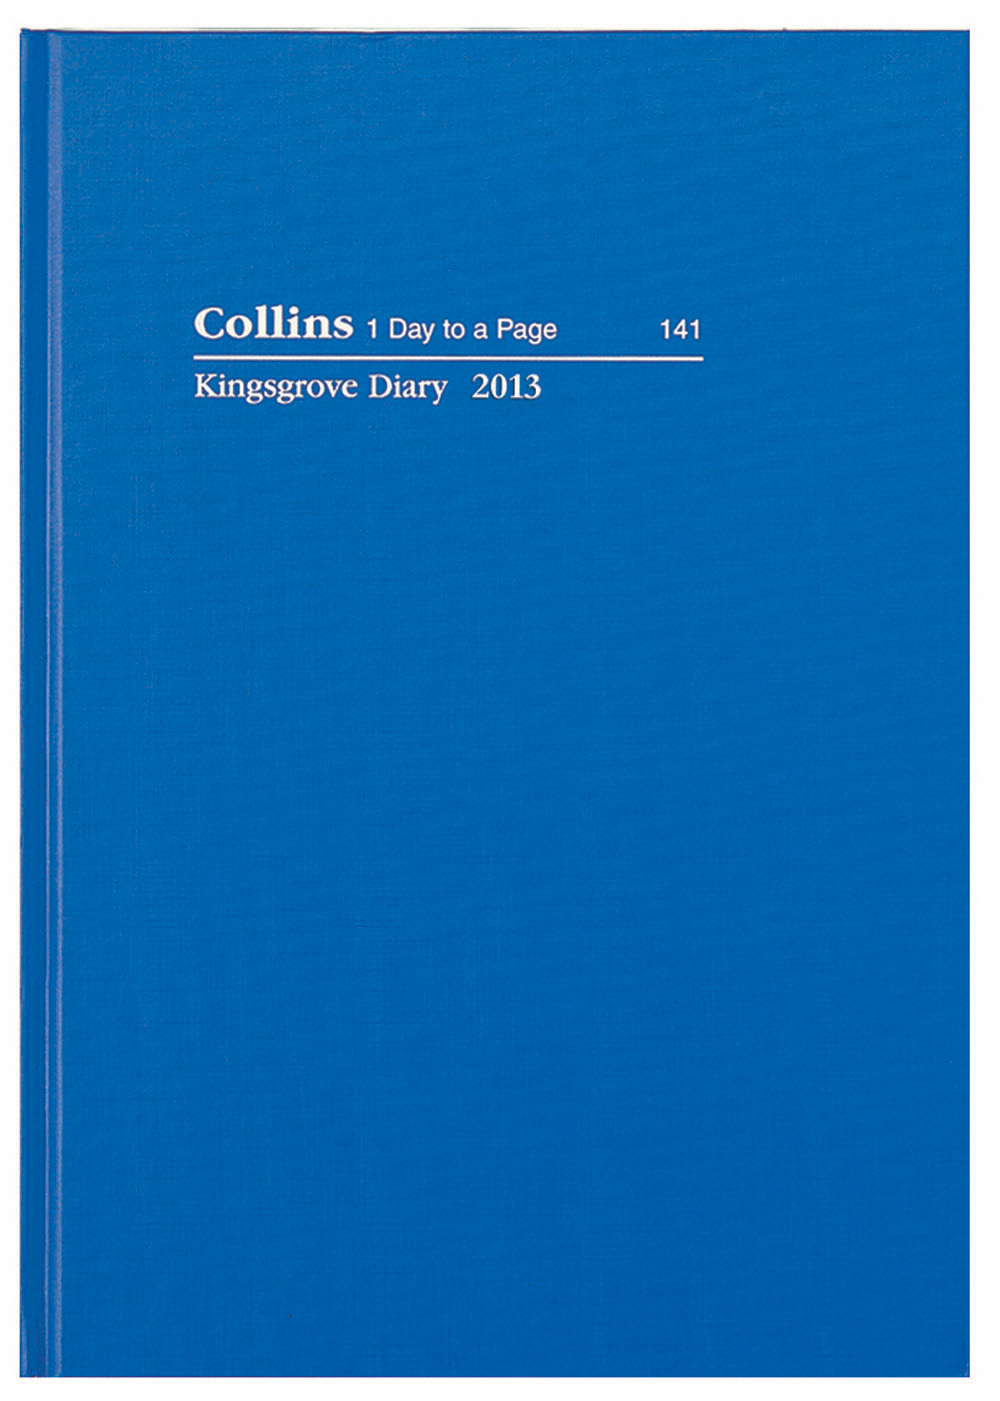 Collins 2018 Kingsgrove A5 Week to View Opening Diary 381.P59-18 Hardcover BLUE